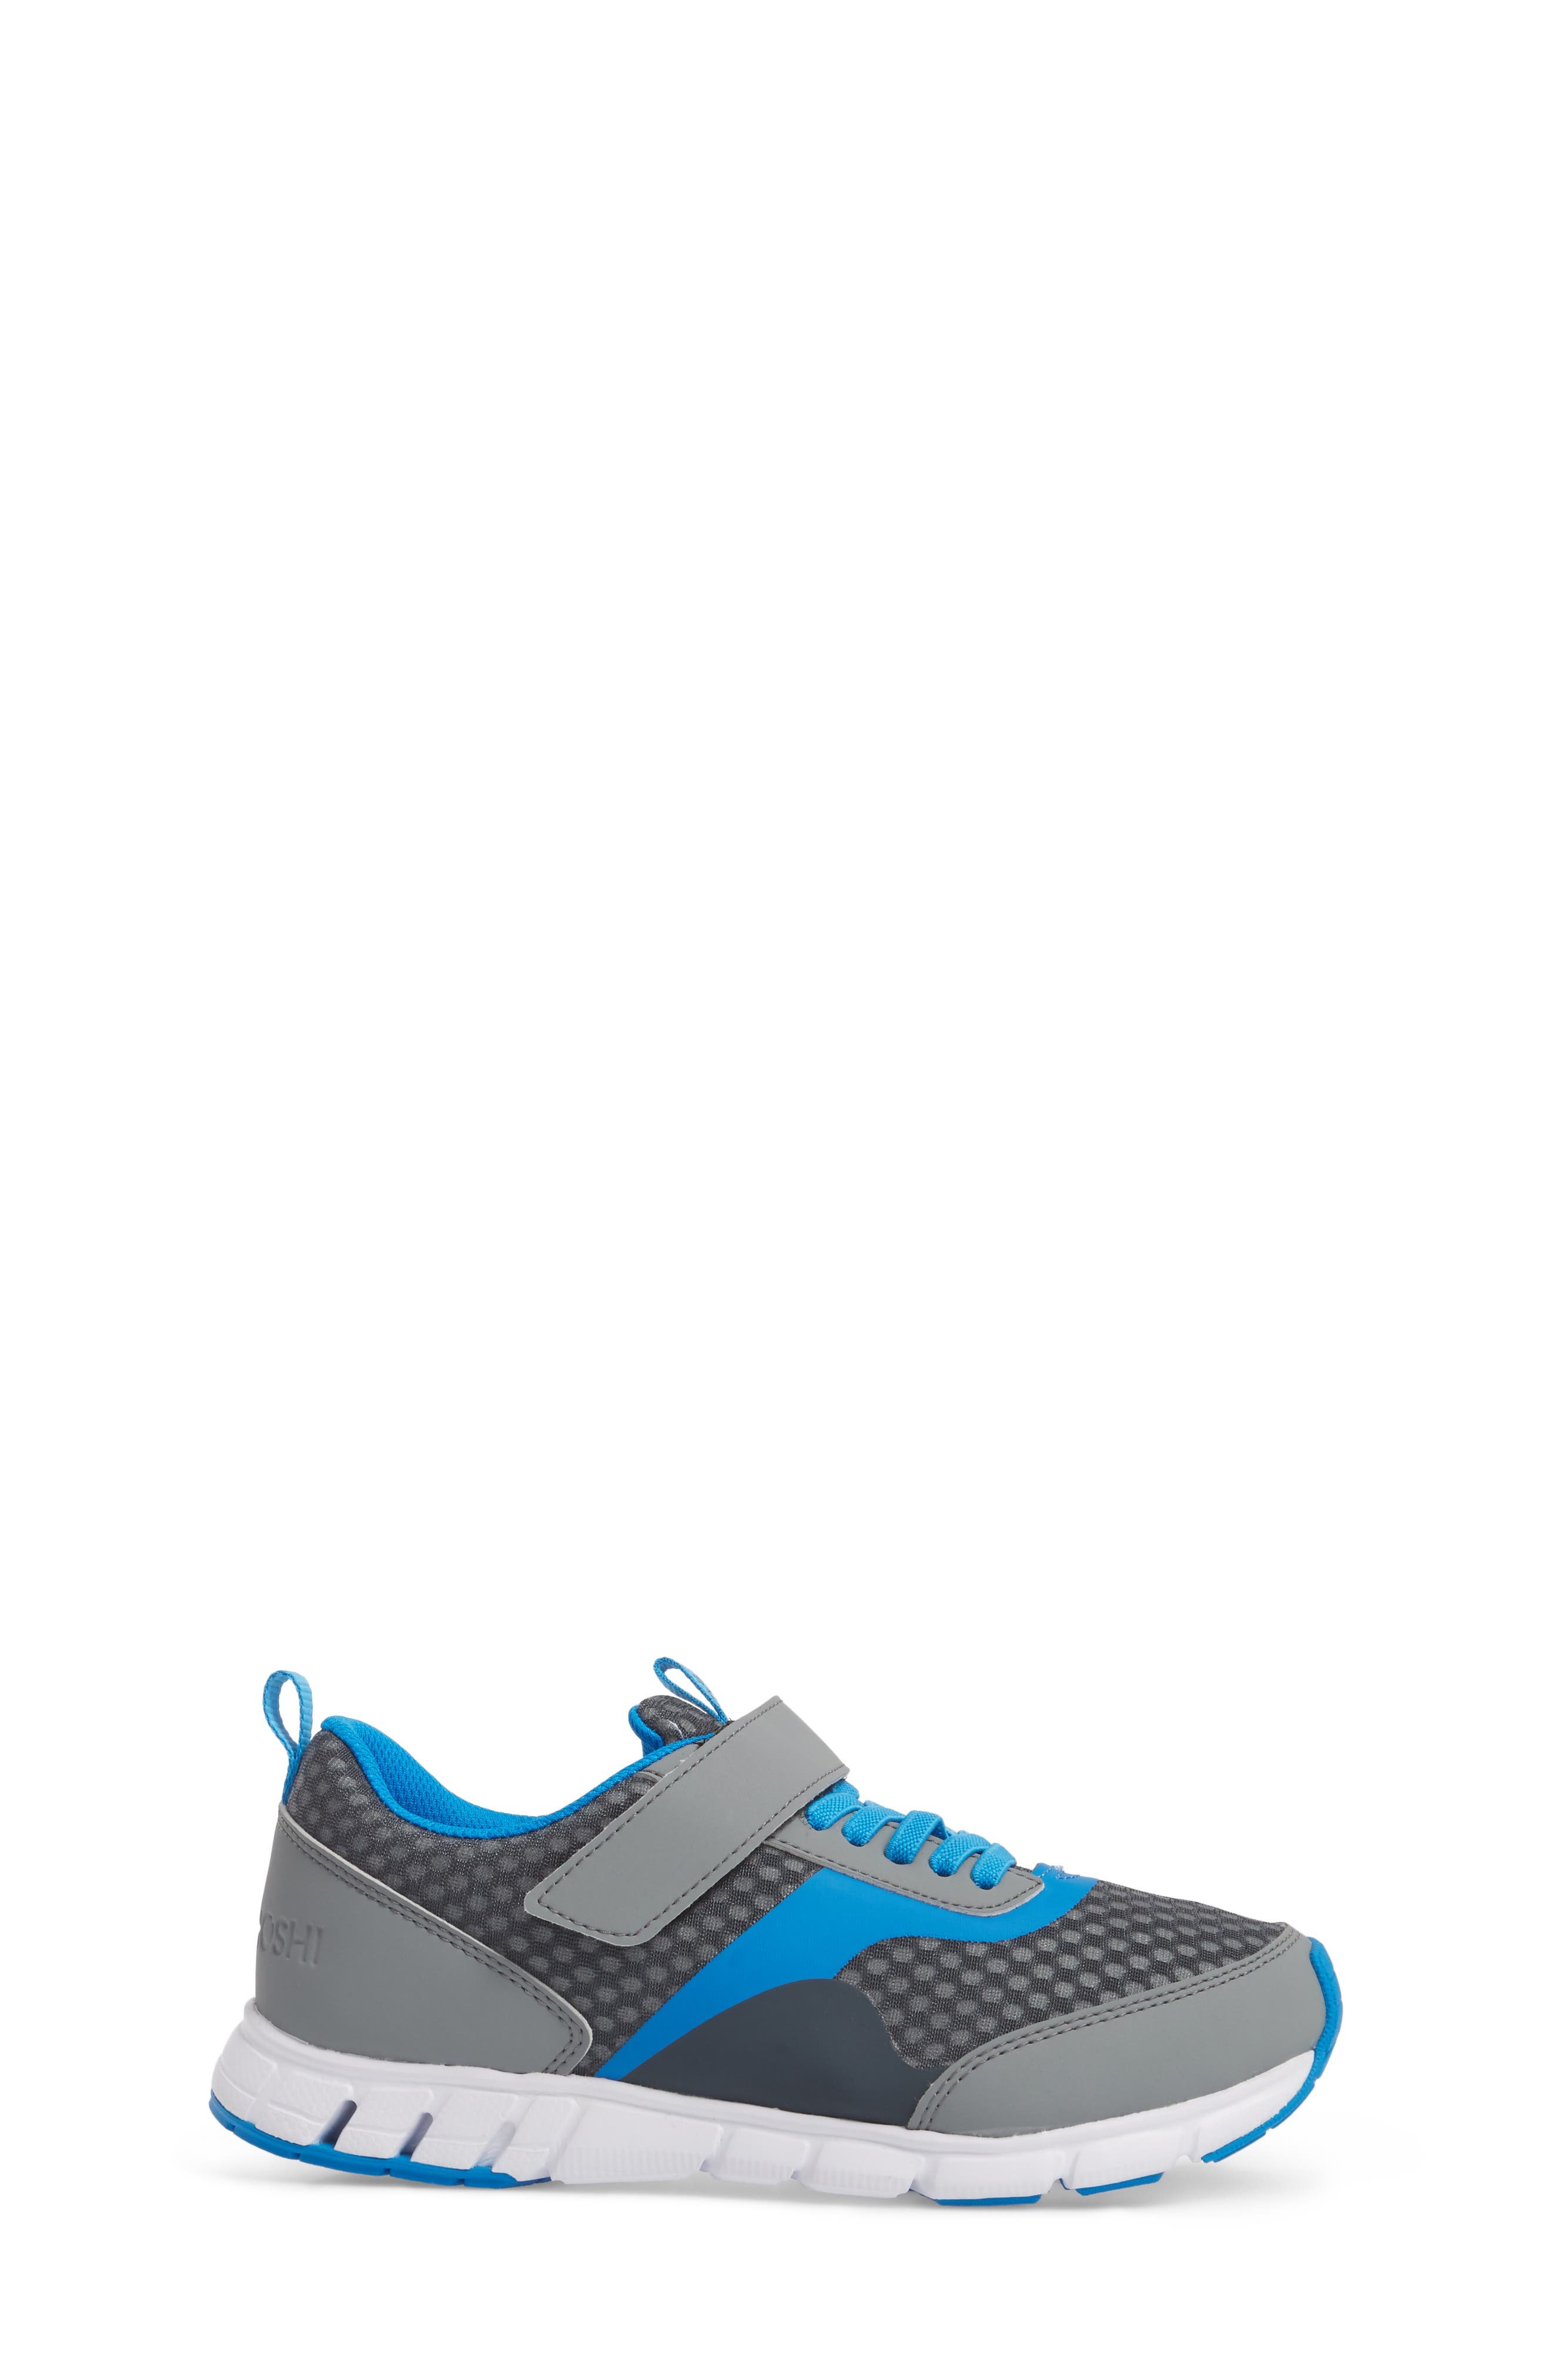 Sonic Washable Sneaker,                             Alternate thumbnail 3, color,                             GRAY/ ROYAL